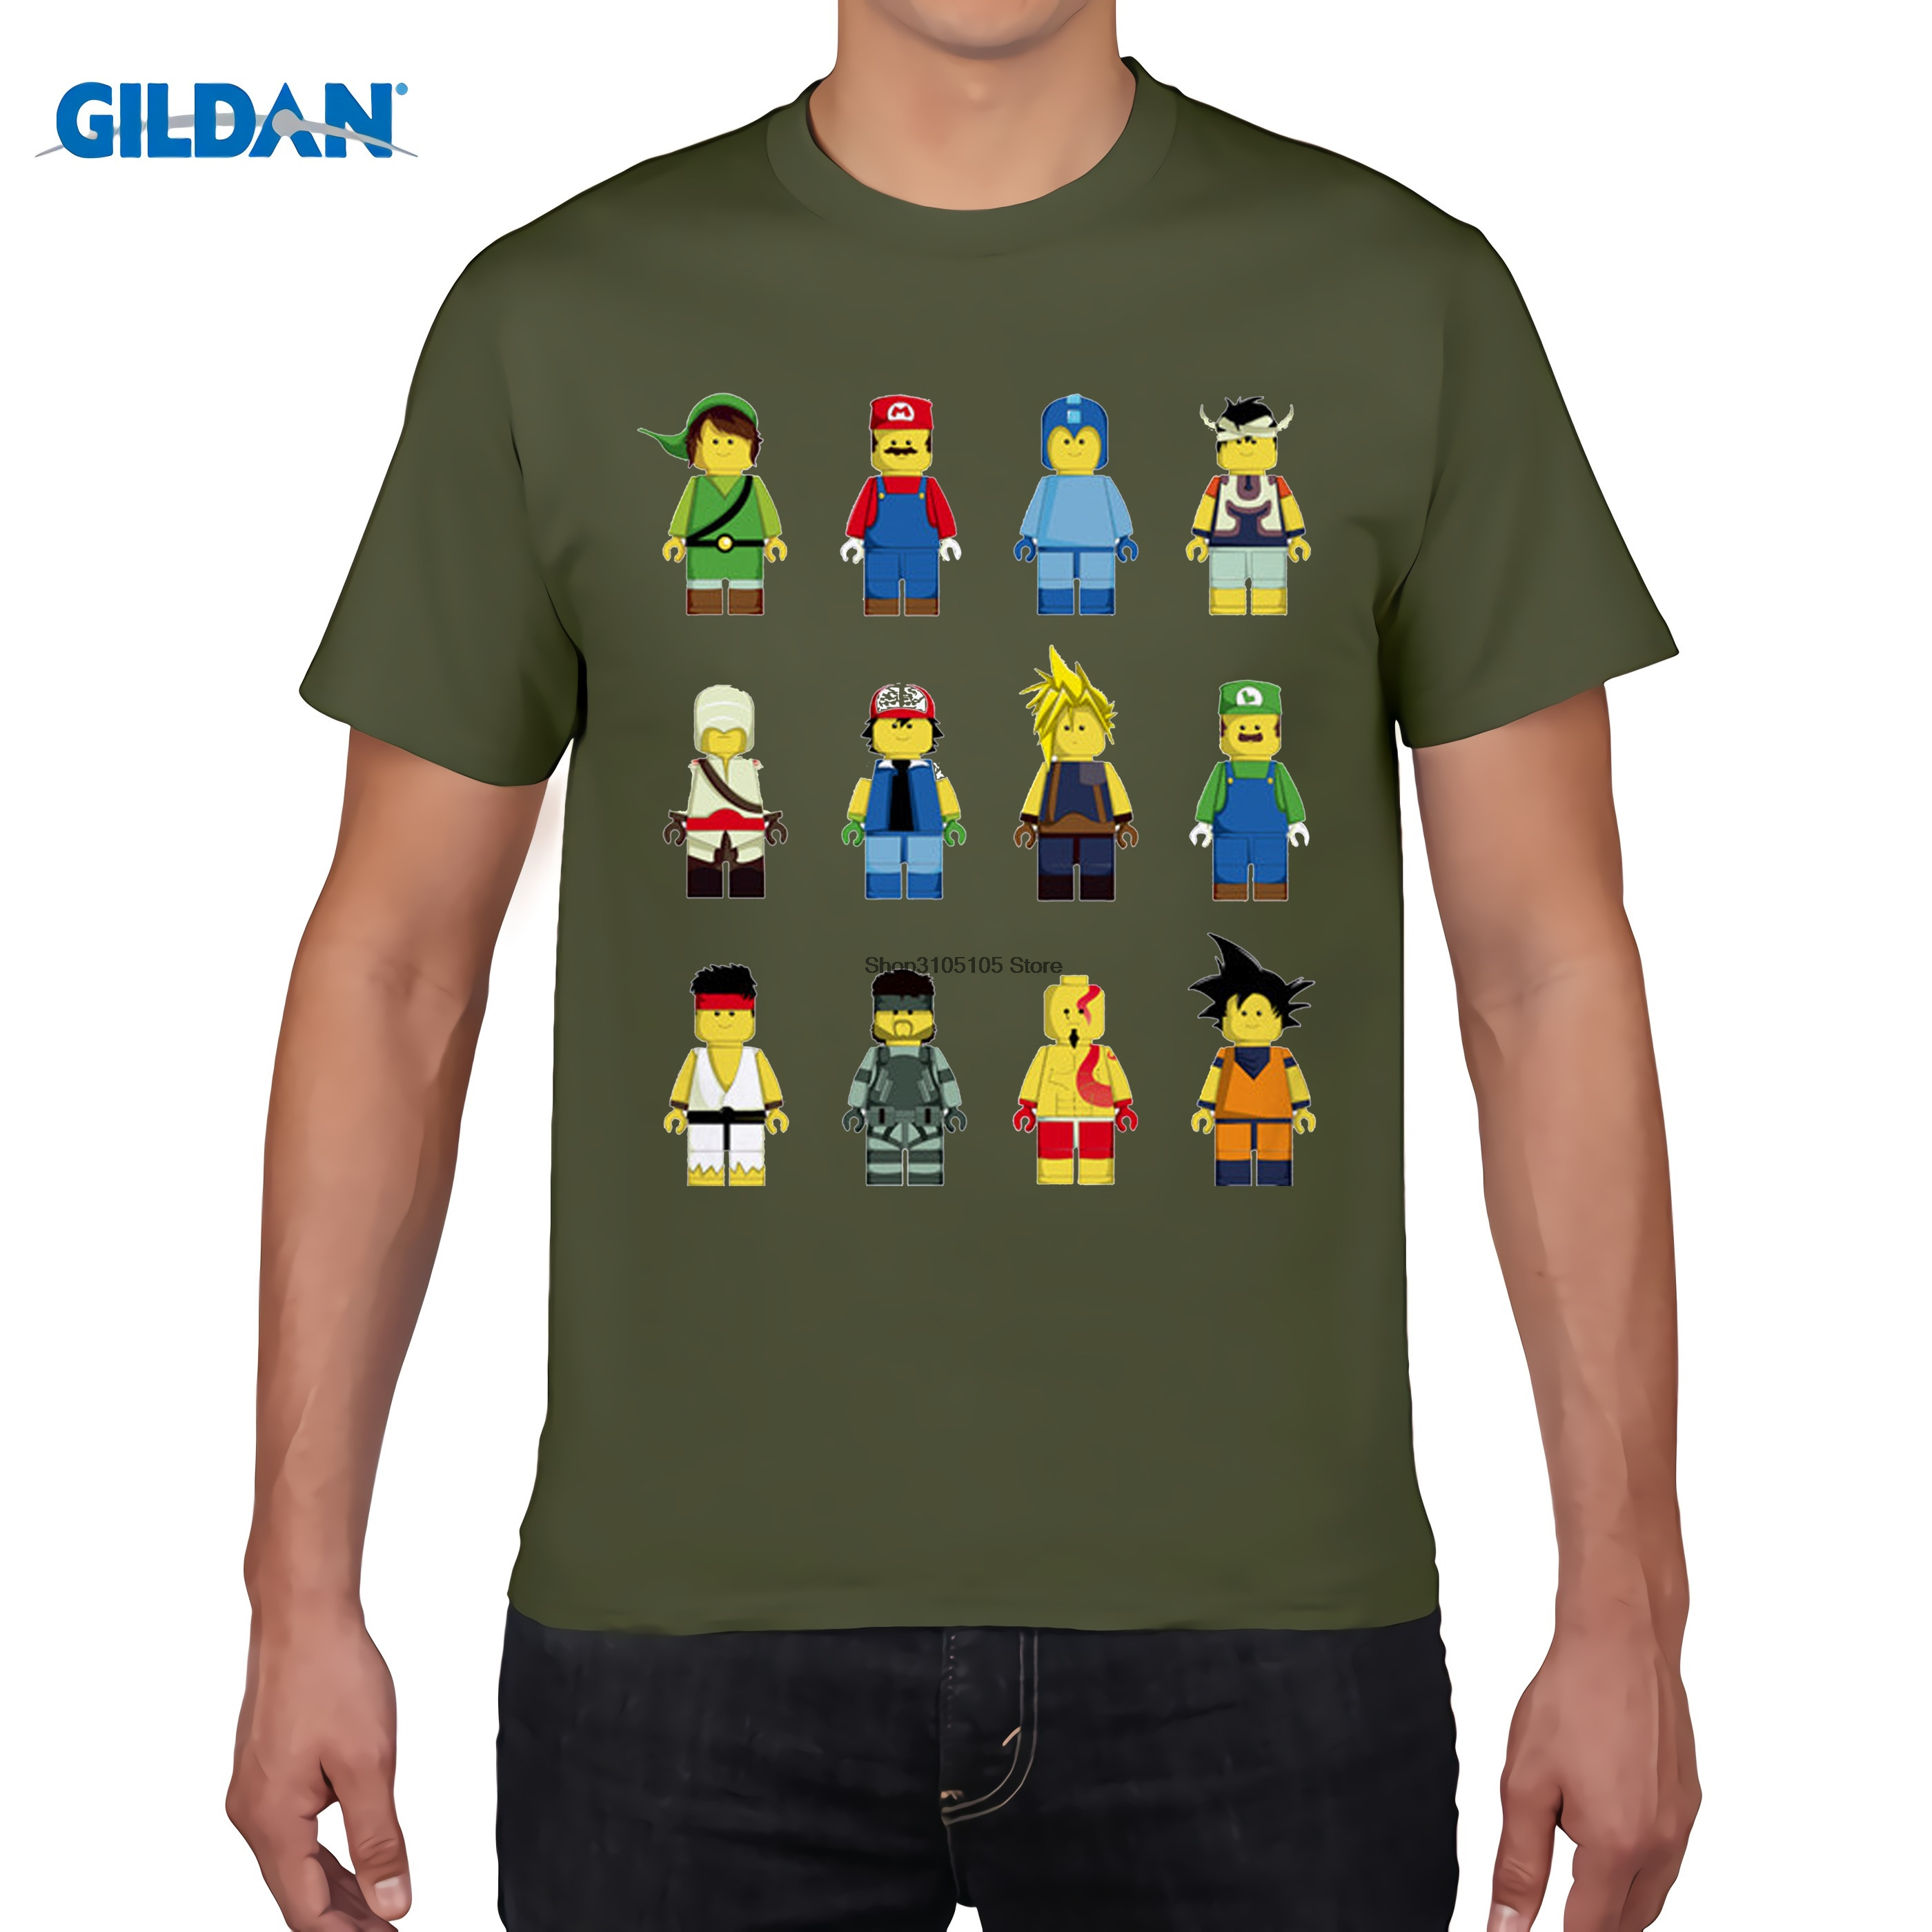 Customer account login admin cms_wysiwyg directive index admin cms_wysiwyg directive/admin/Cms_Wysiwyg/directive/index - Design T Shirt Store Downloader Gildan Funny Men T Shirt 2017 Summer Cosplay Design